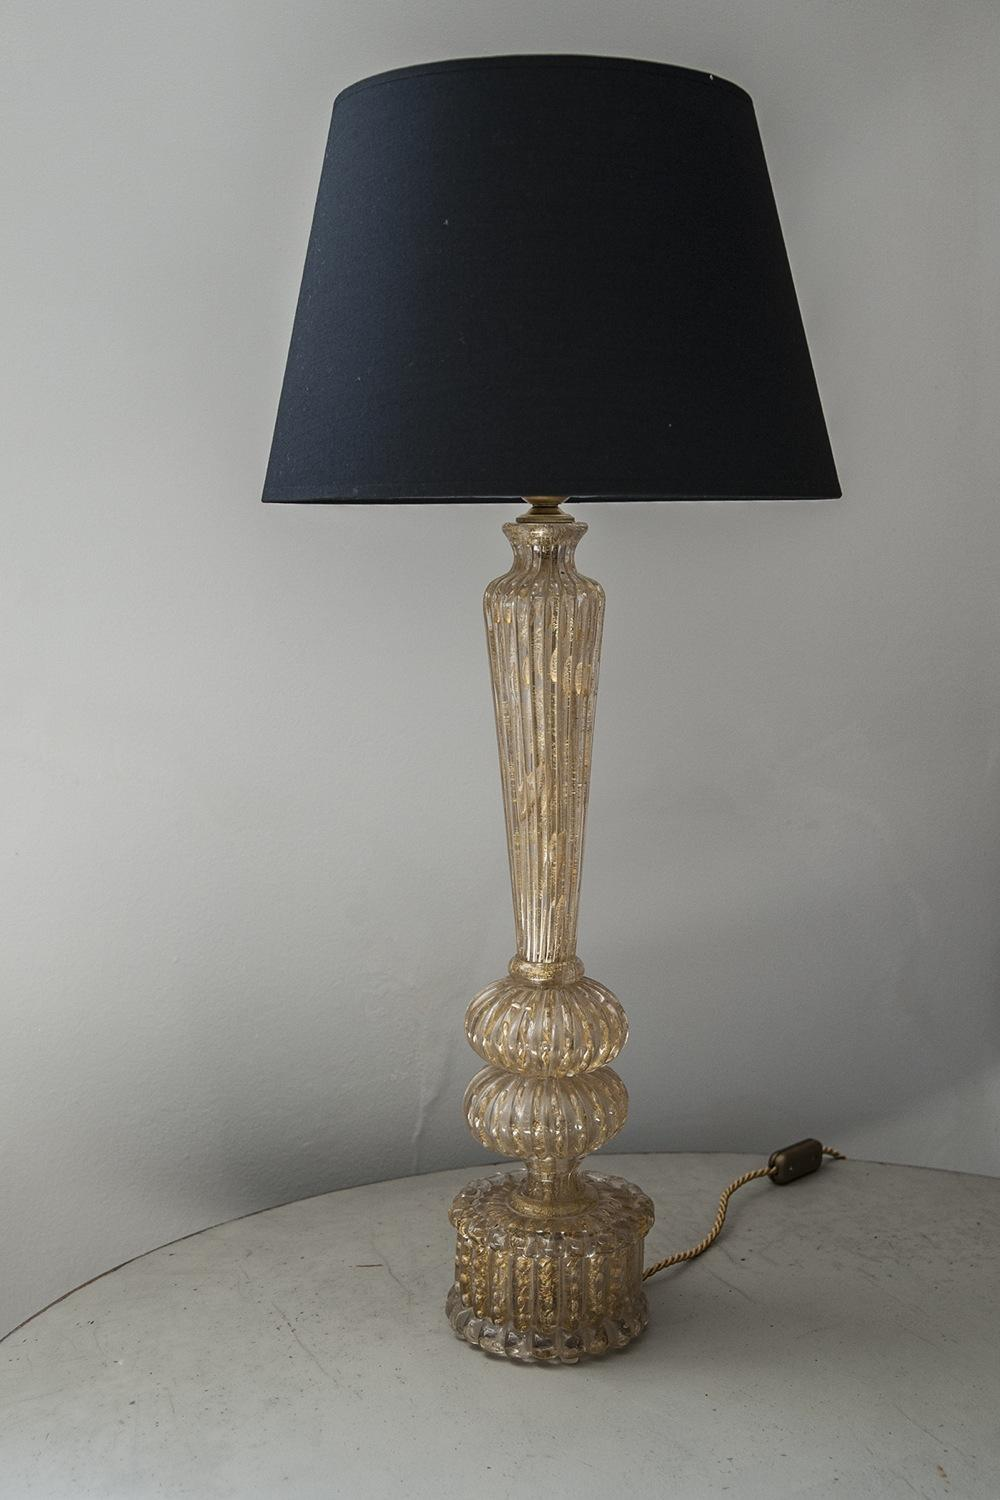 barovier toso murano lamp in lighting. Black Bedroom Furniture Sets. Home Design Ideas